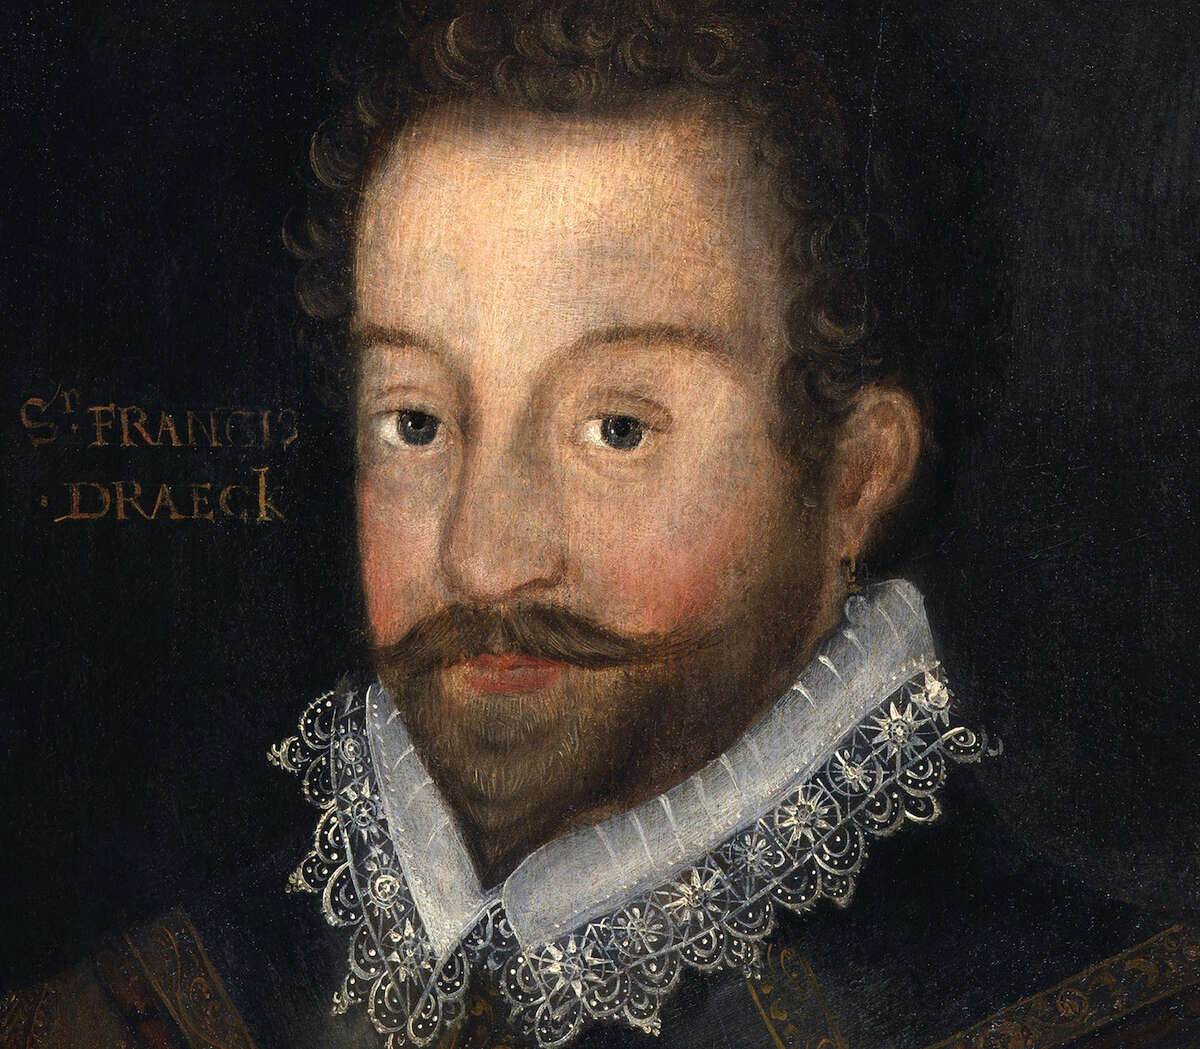 Sir Francis Drake, after an engraving attributed to Jodocus Hondius. Circa 1583. Oil on panel.